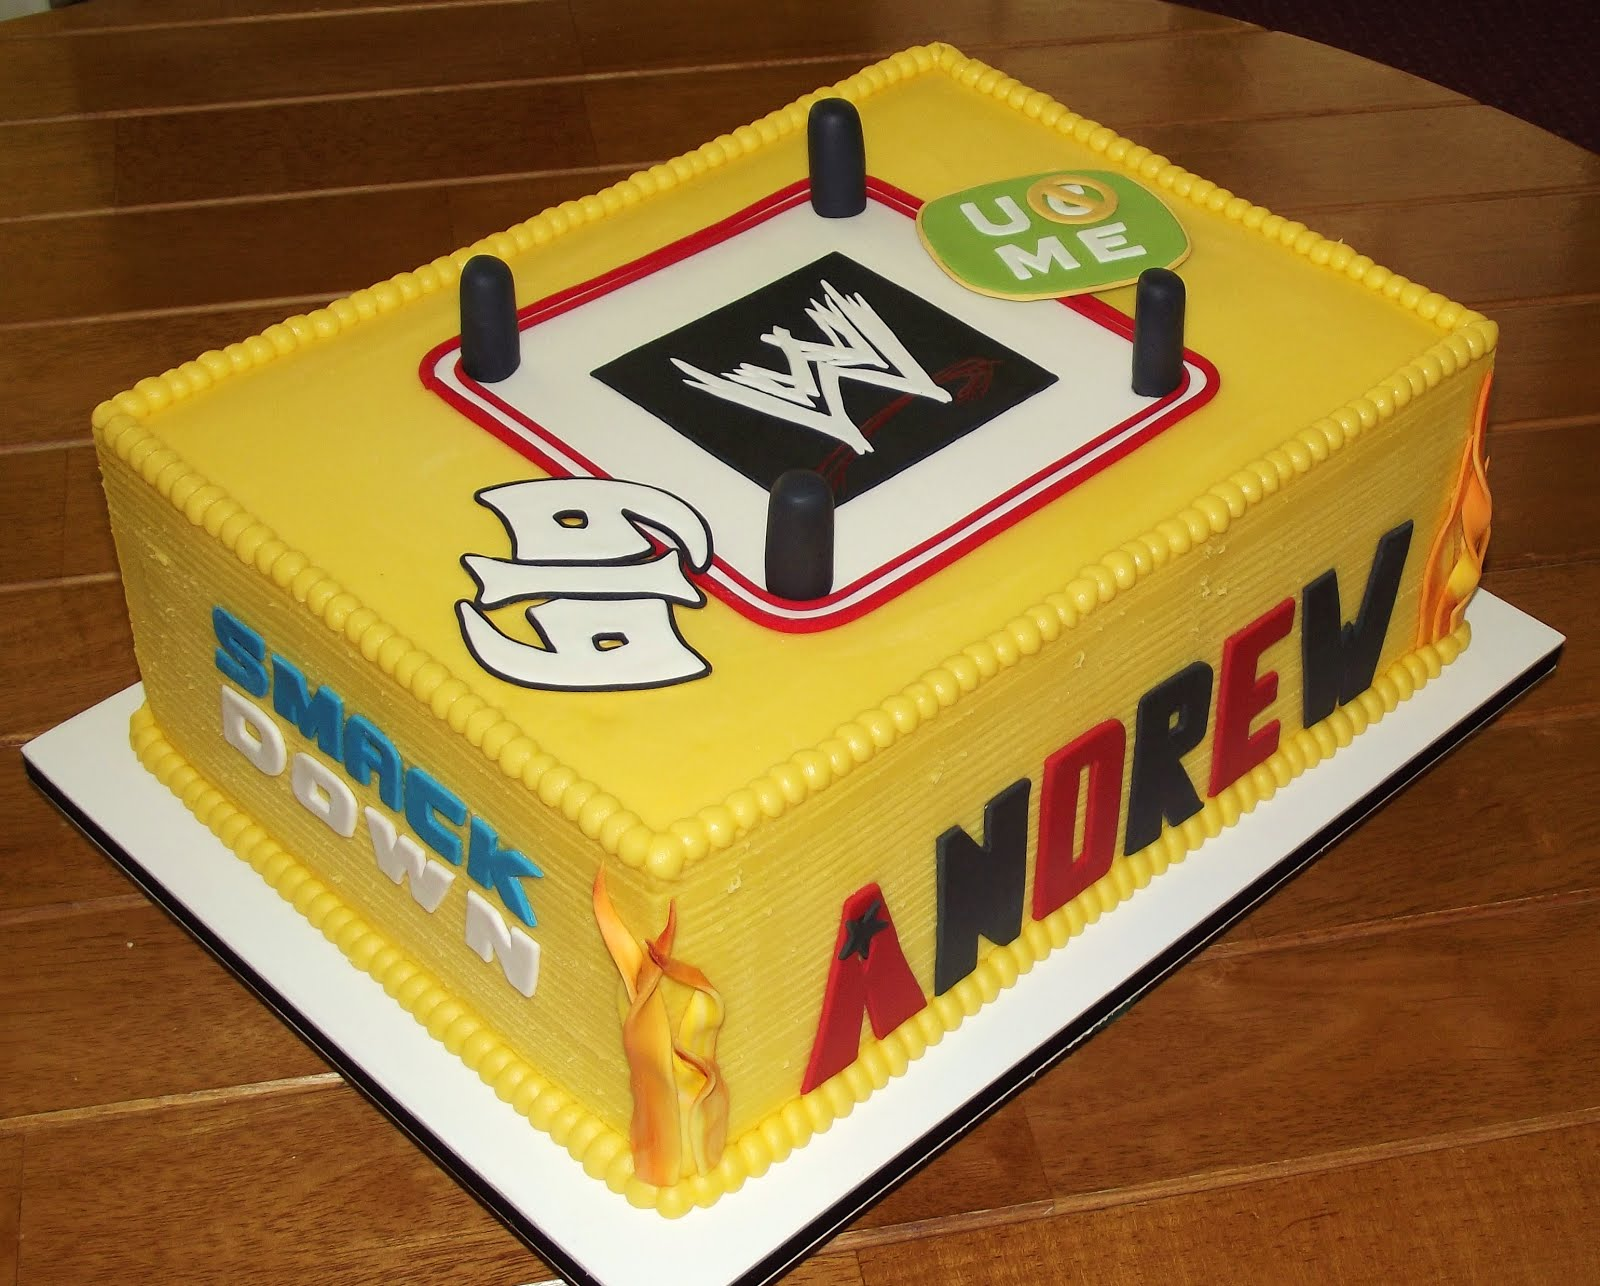 Homemade Wwe Wrestling Cake Ideas And Designs